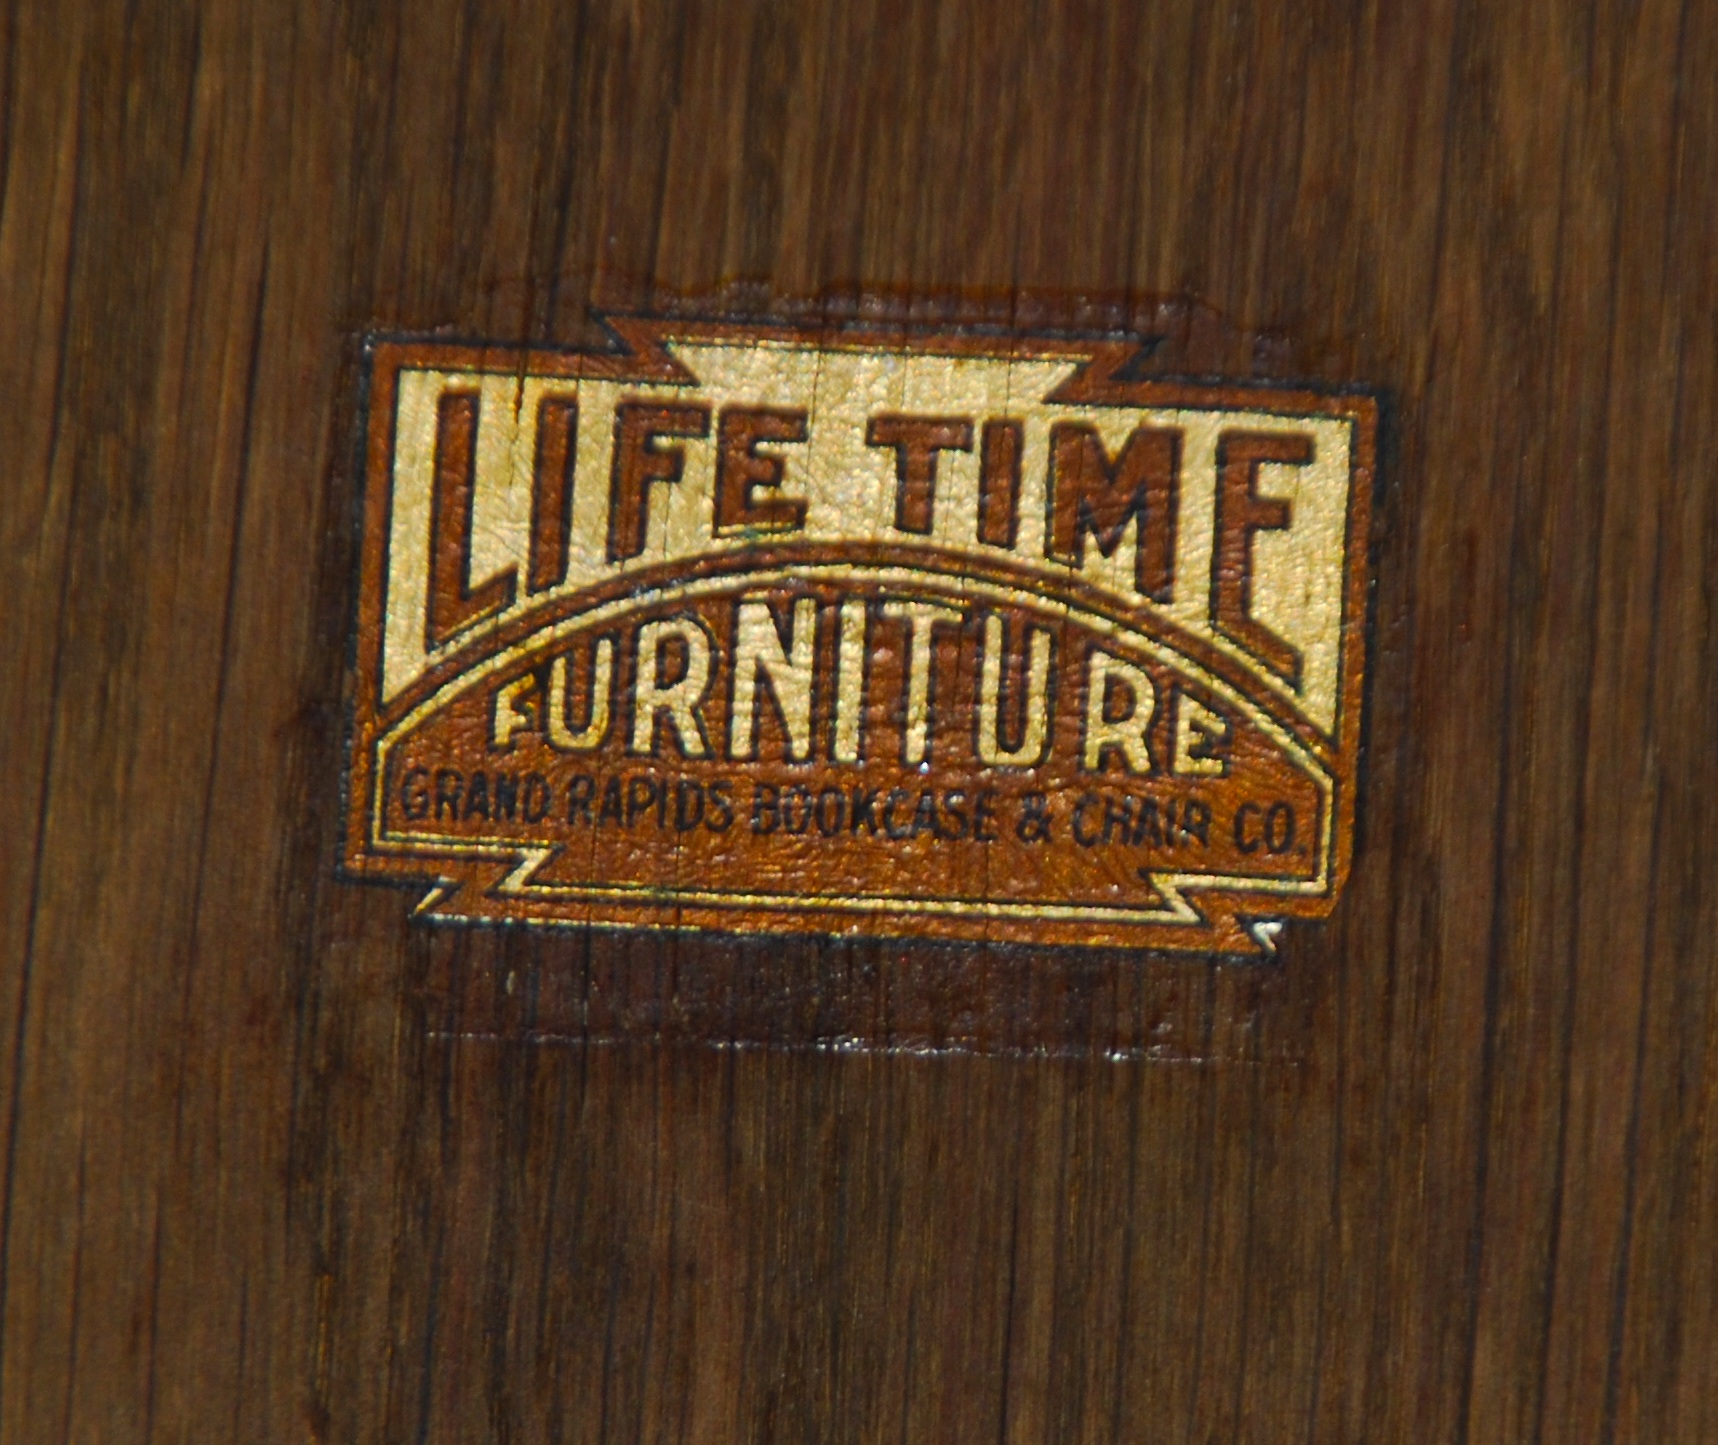 Voorhees Craftsman Mission Oak Furniture Lifetime